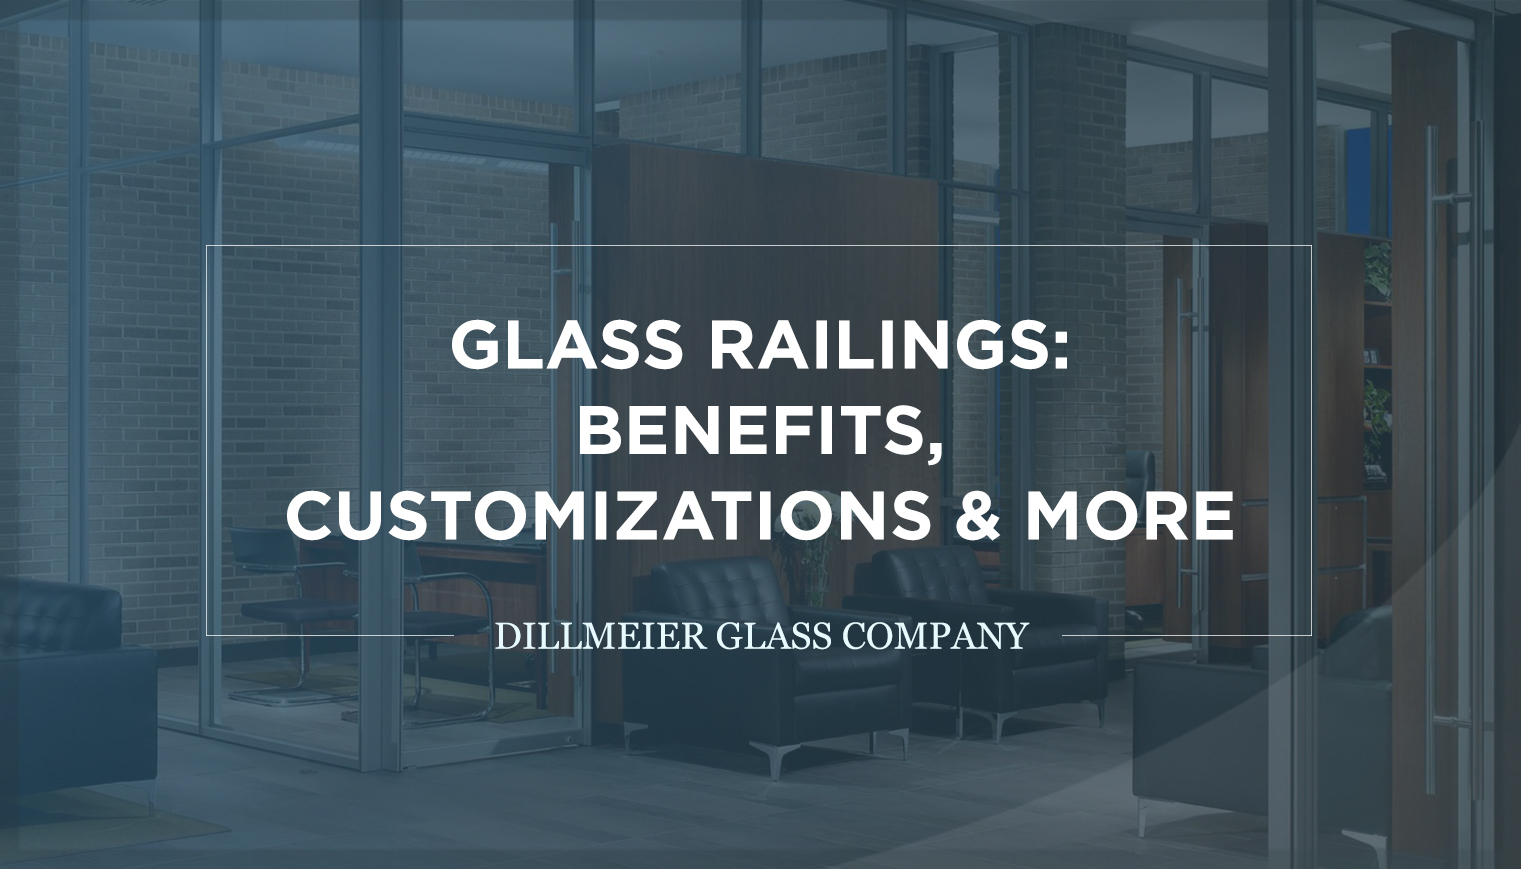 Glass office environment with text - Glass Railings- Benefits, Customizations & More